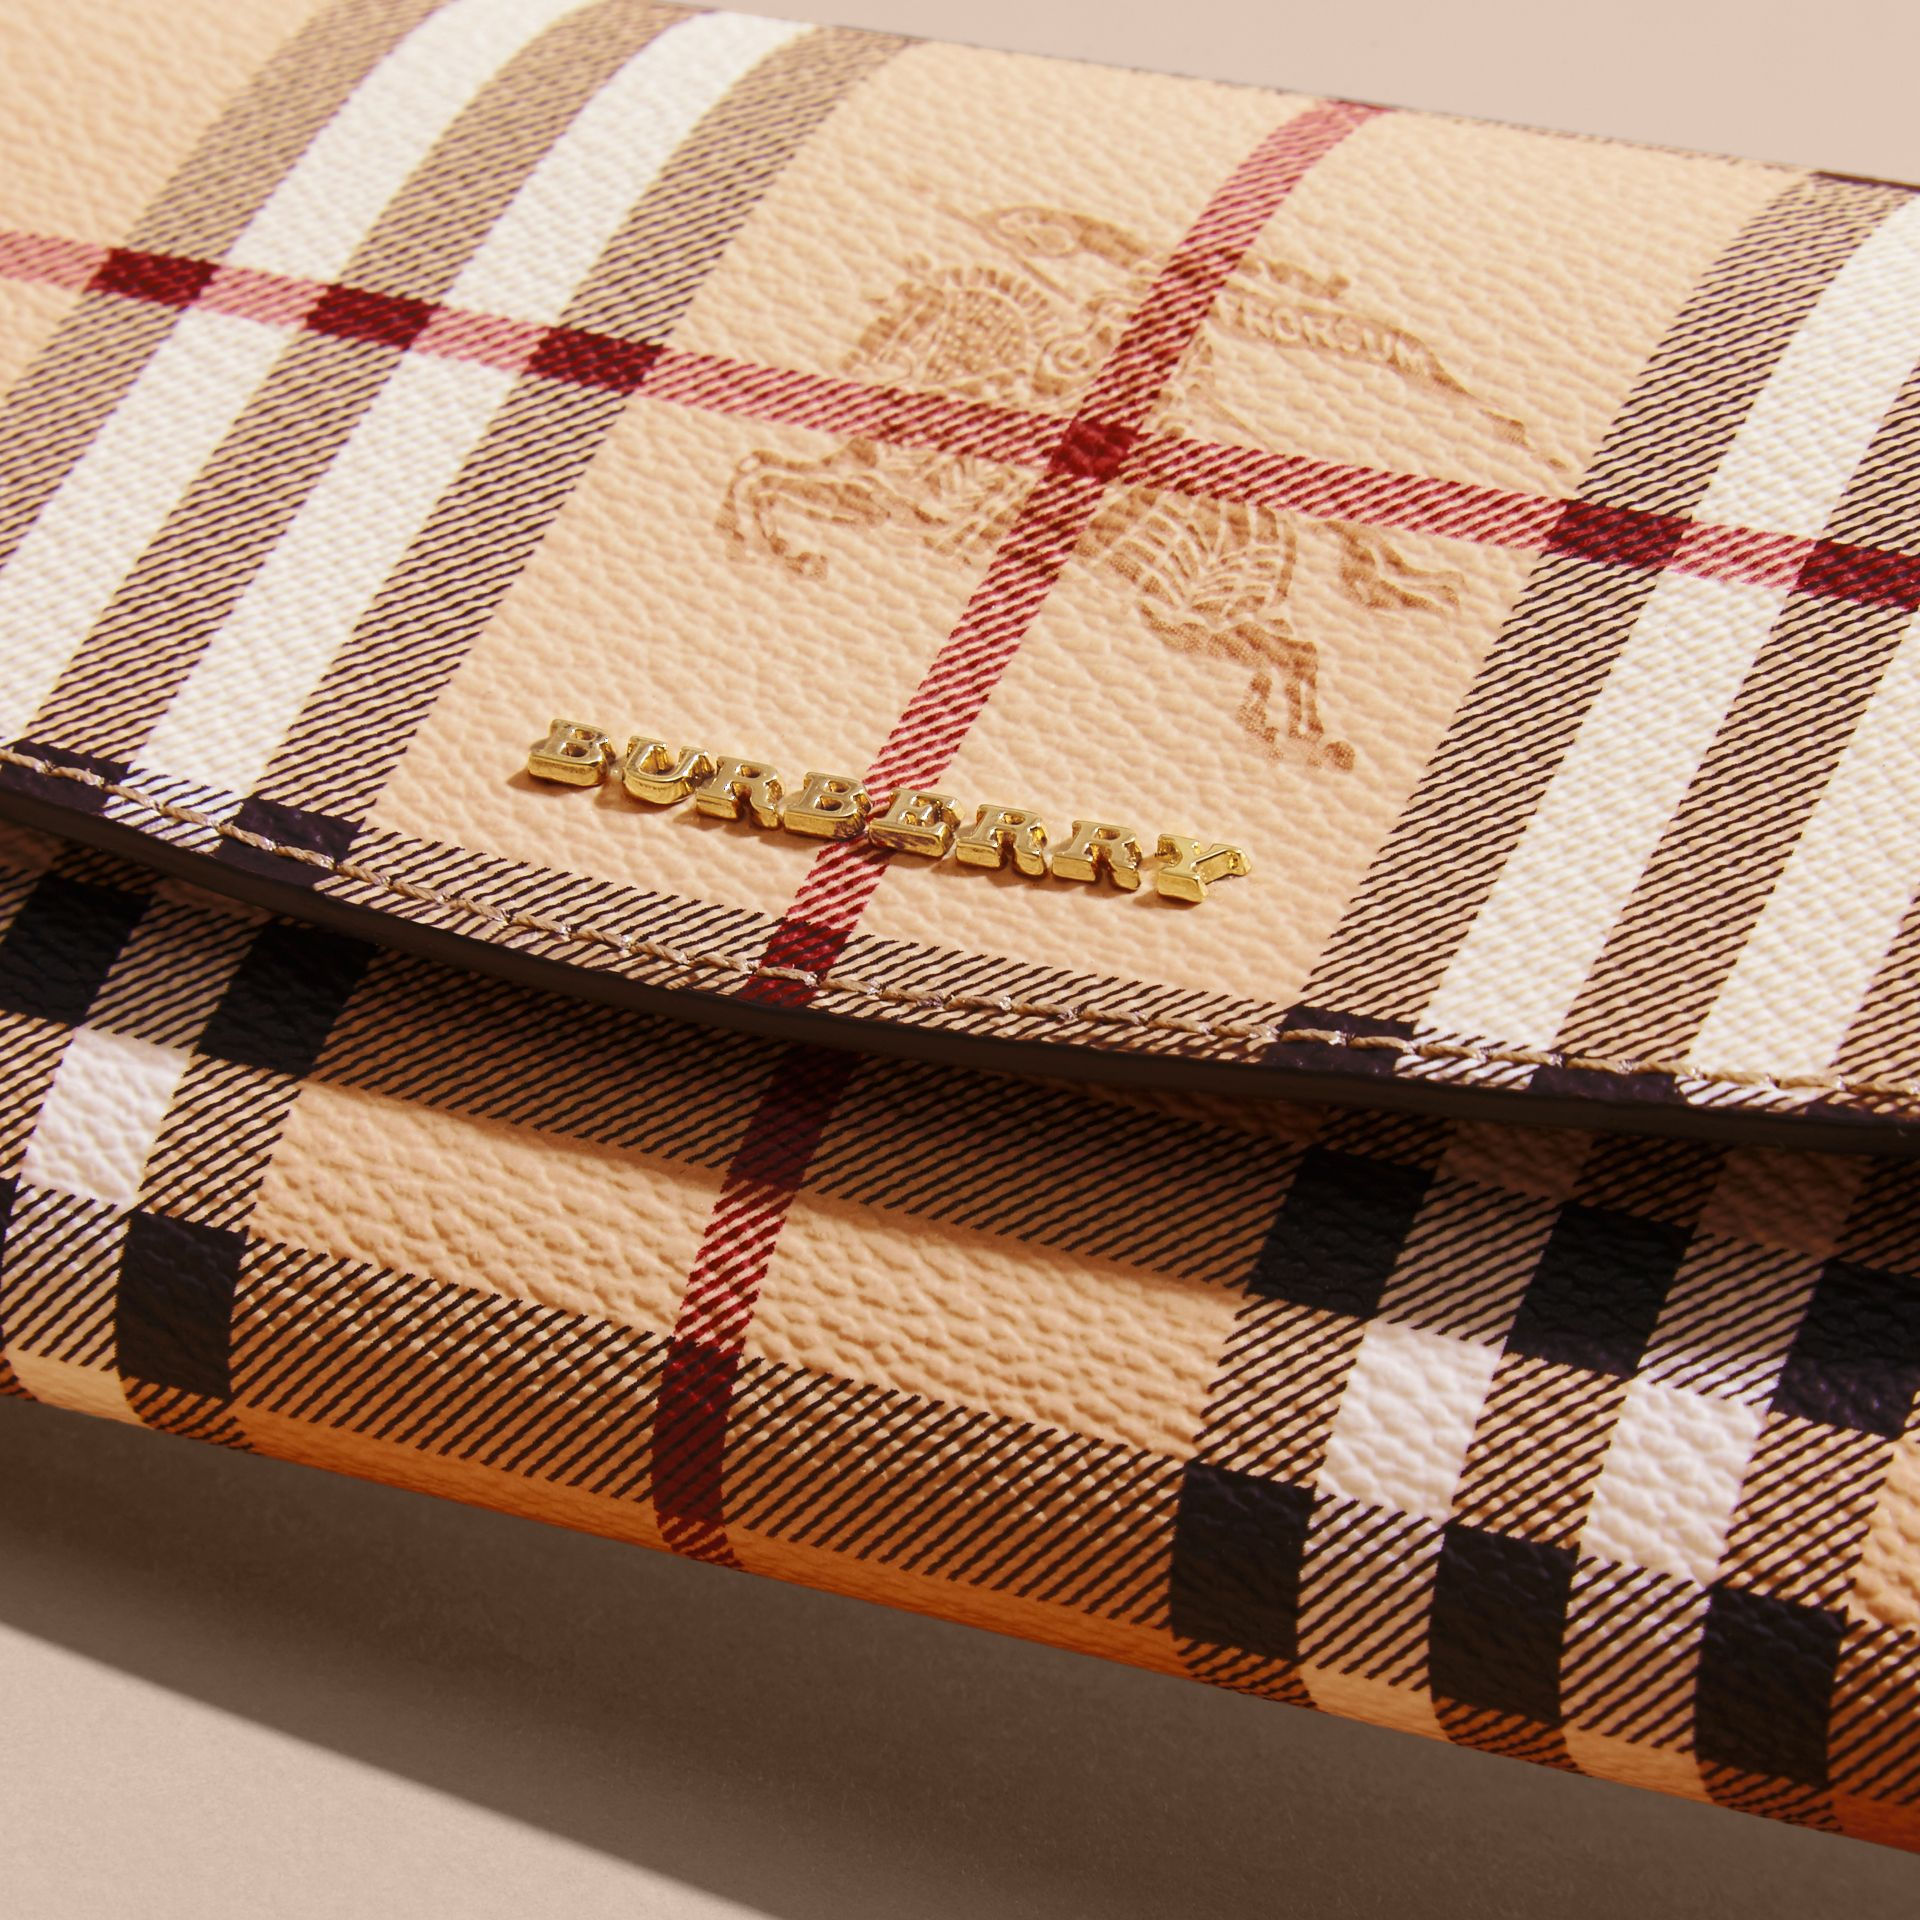 Haymarket Check and Leather Continental Wallet in Tan - Women | Burberry Canada - gallery image 2